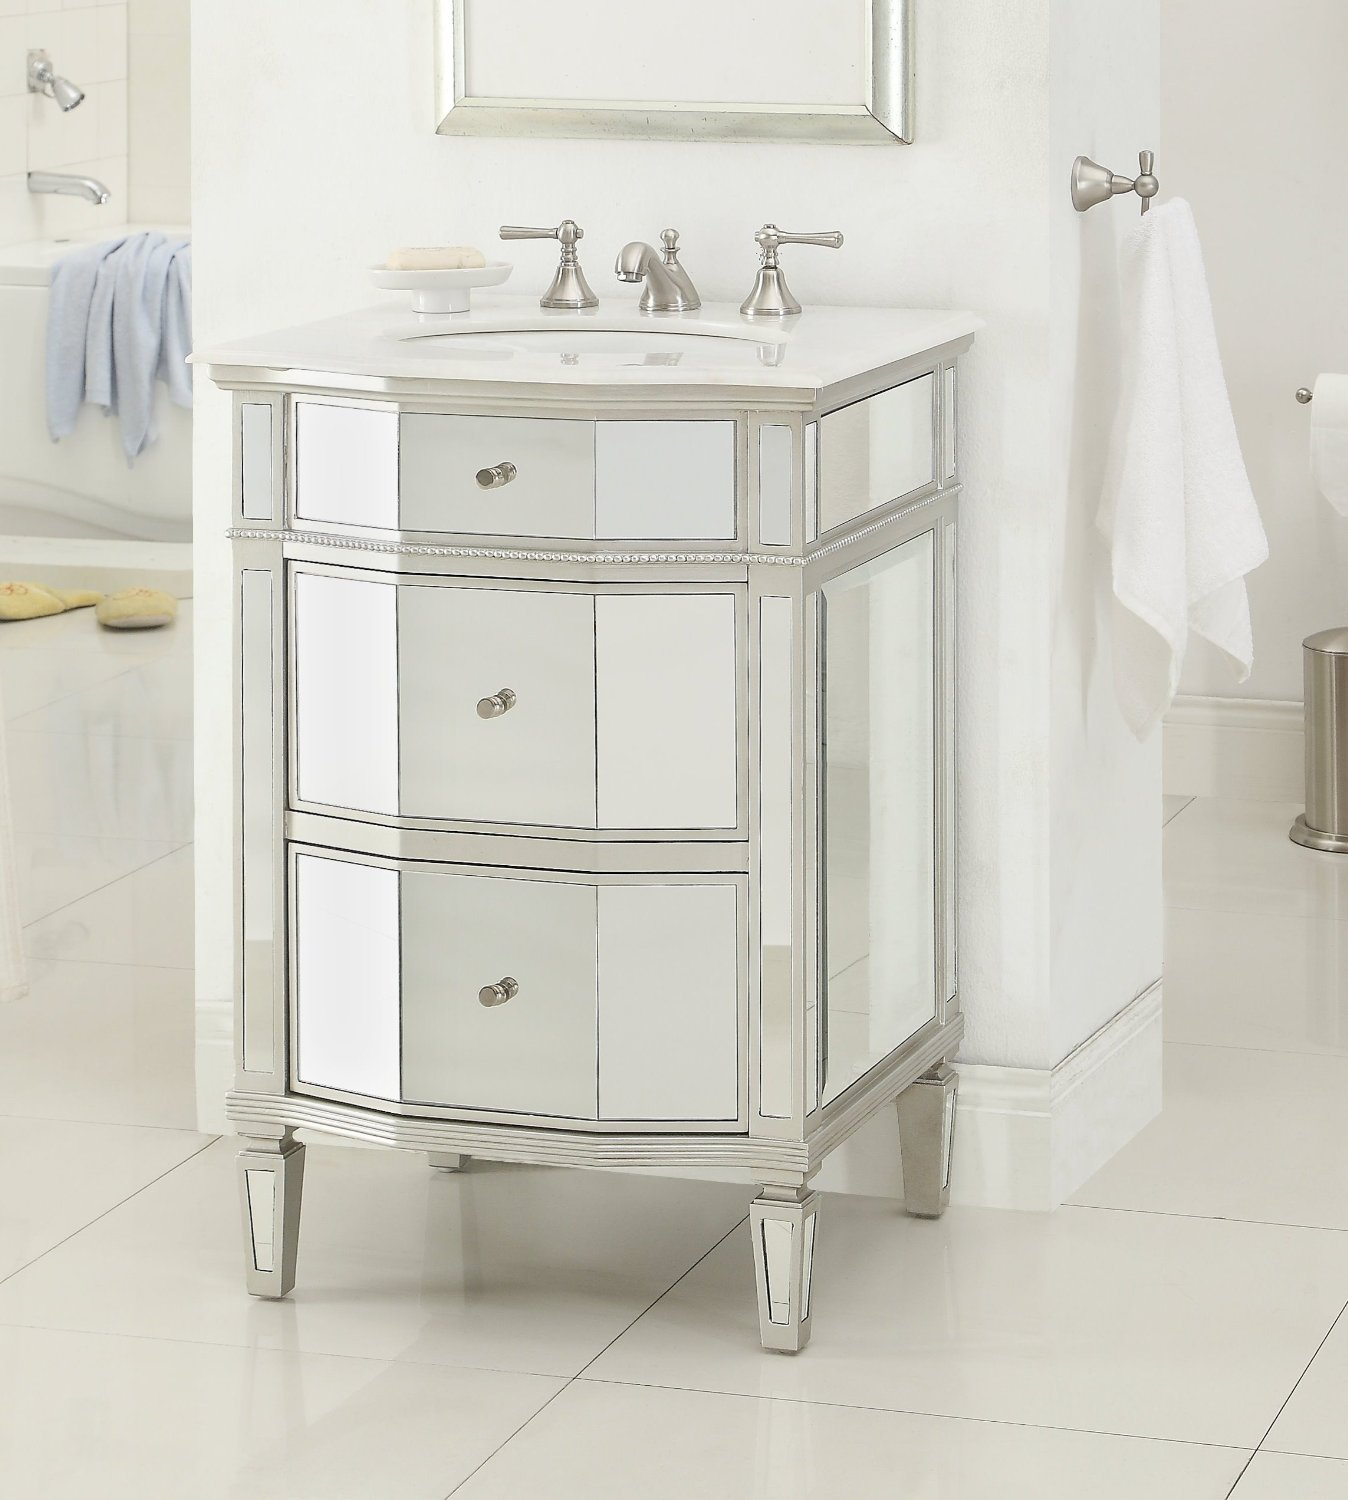 Adelina Inch Mirrored Bathroom Vanity Imperial White Marble - 24 inch bathroom vanity with drawers for bathroom decor ideas